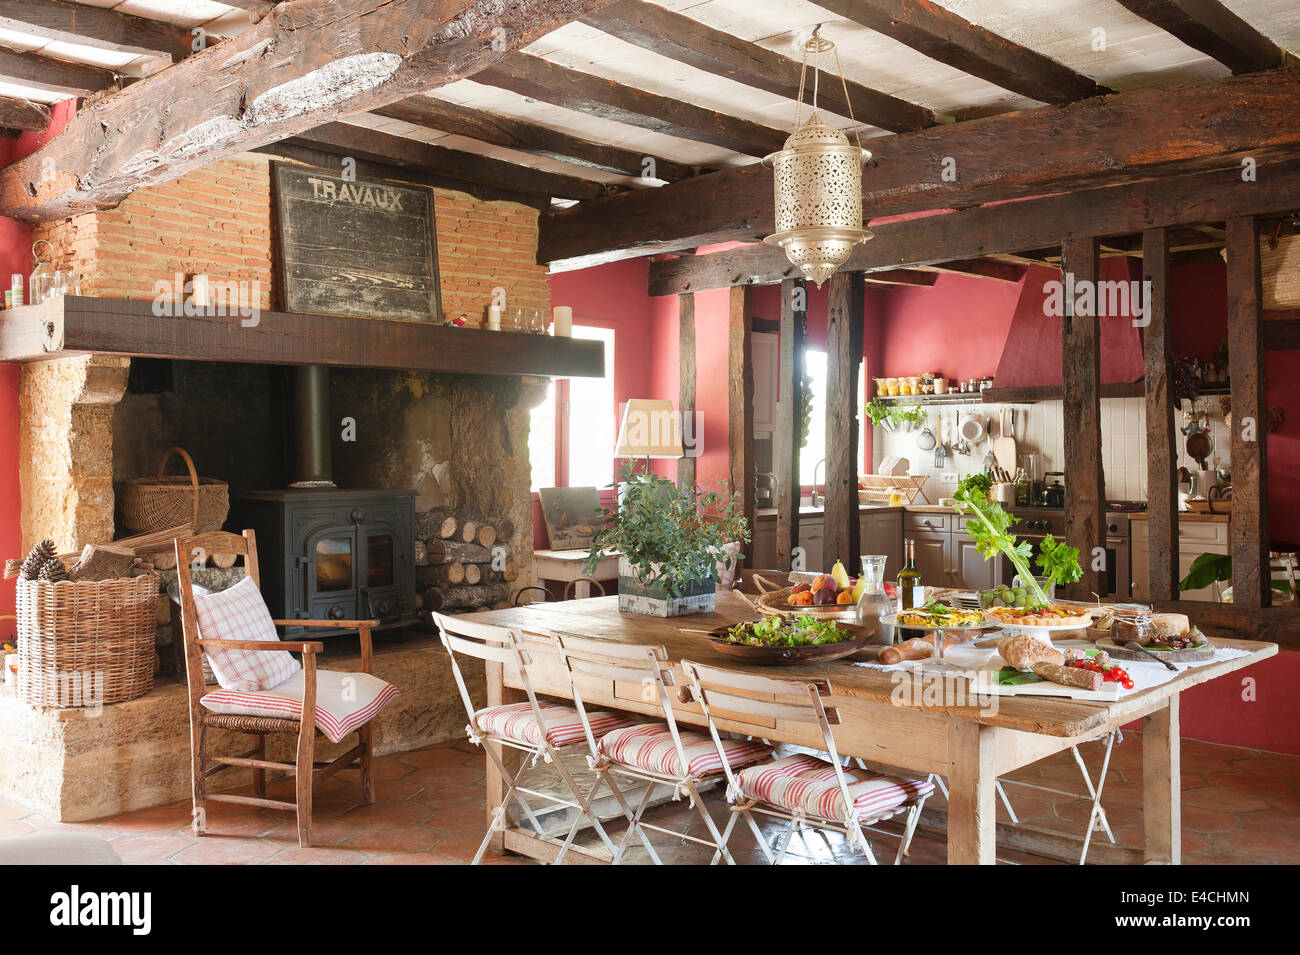 Rustic french country kitchens - Large Rustic French Country Kitchen With Old Ceiling Beams Woodburning Stove And Laid Table